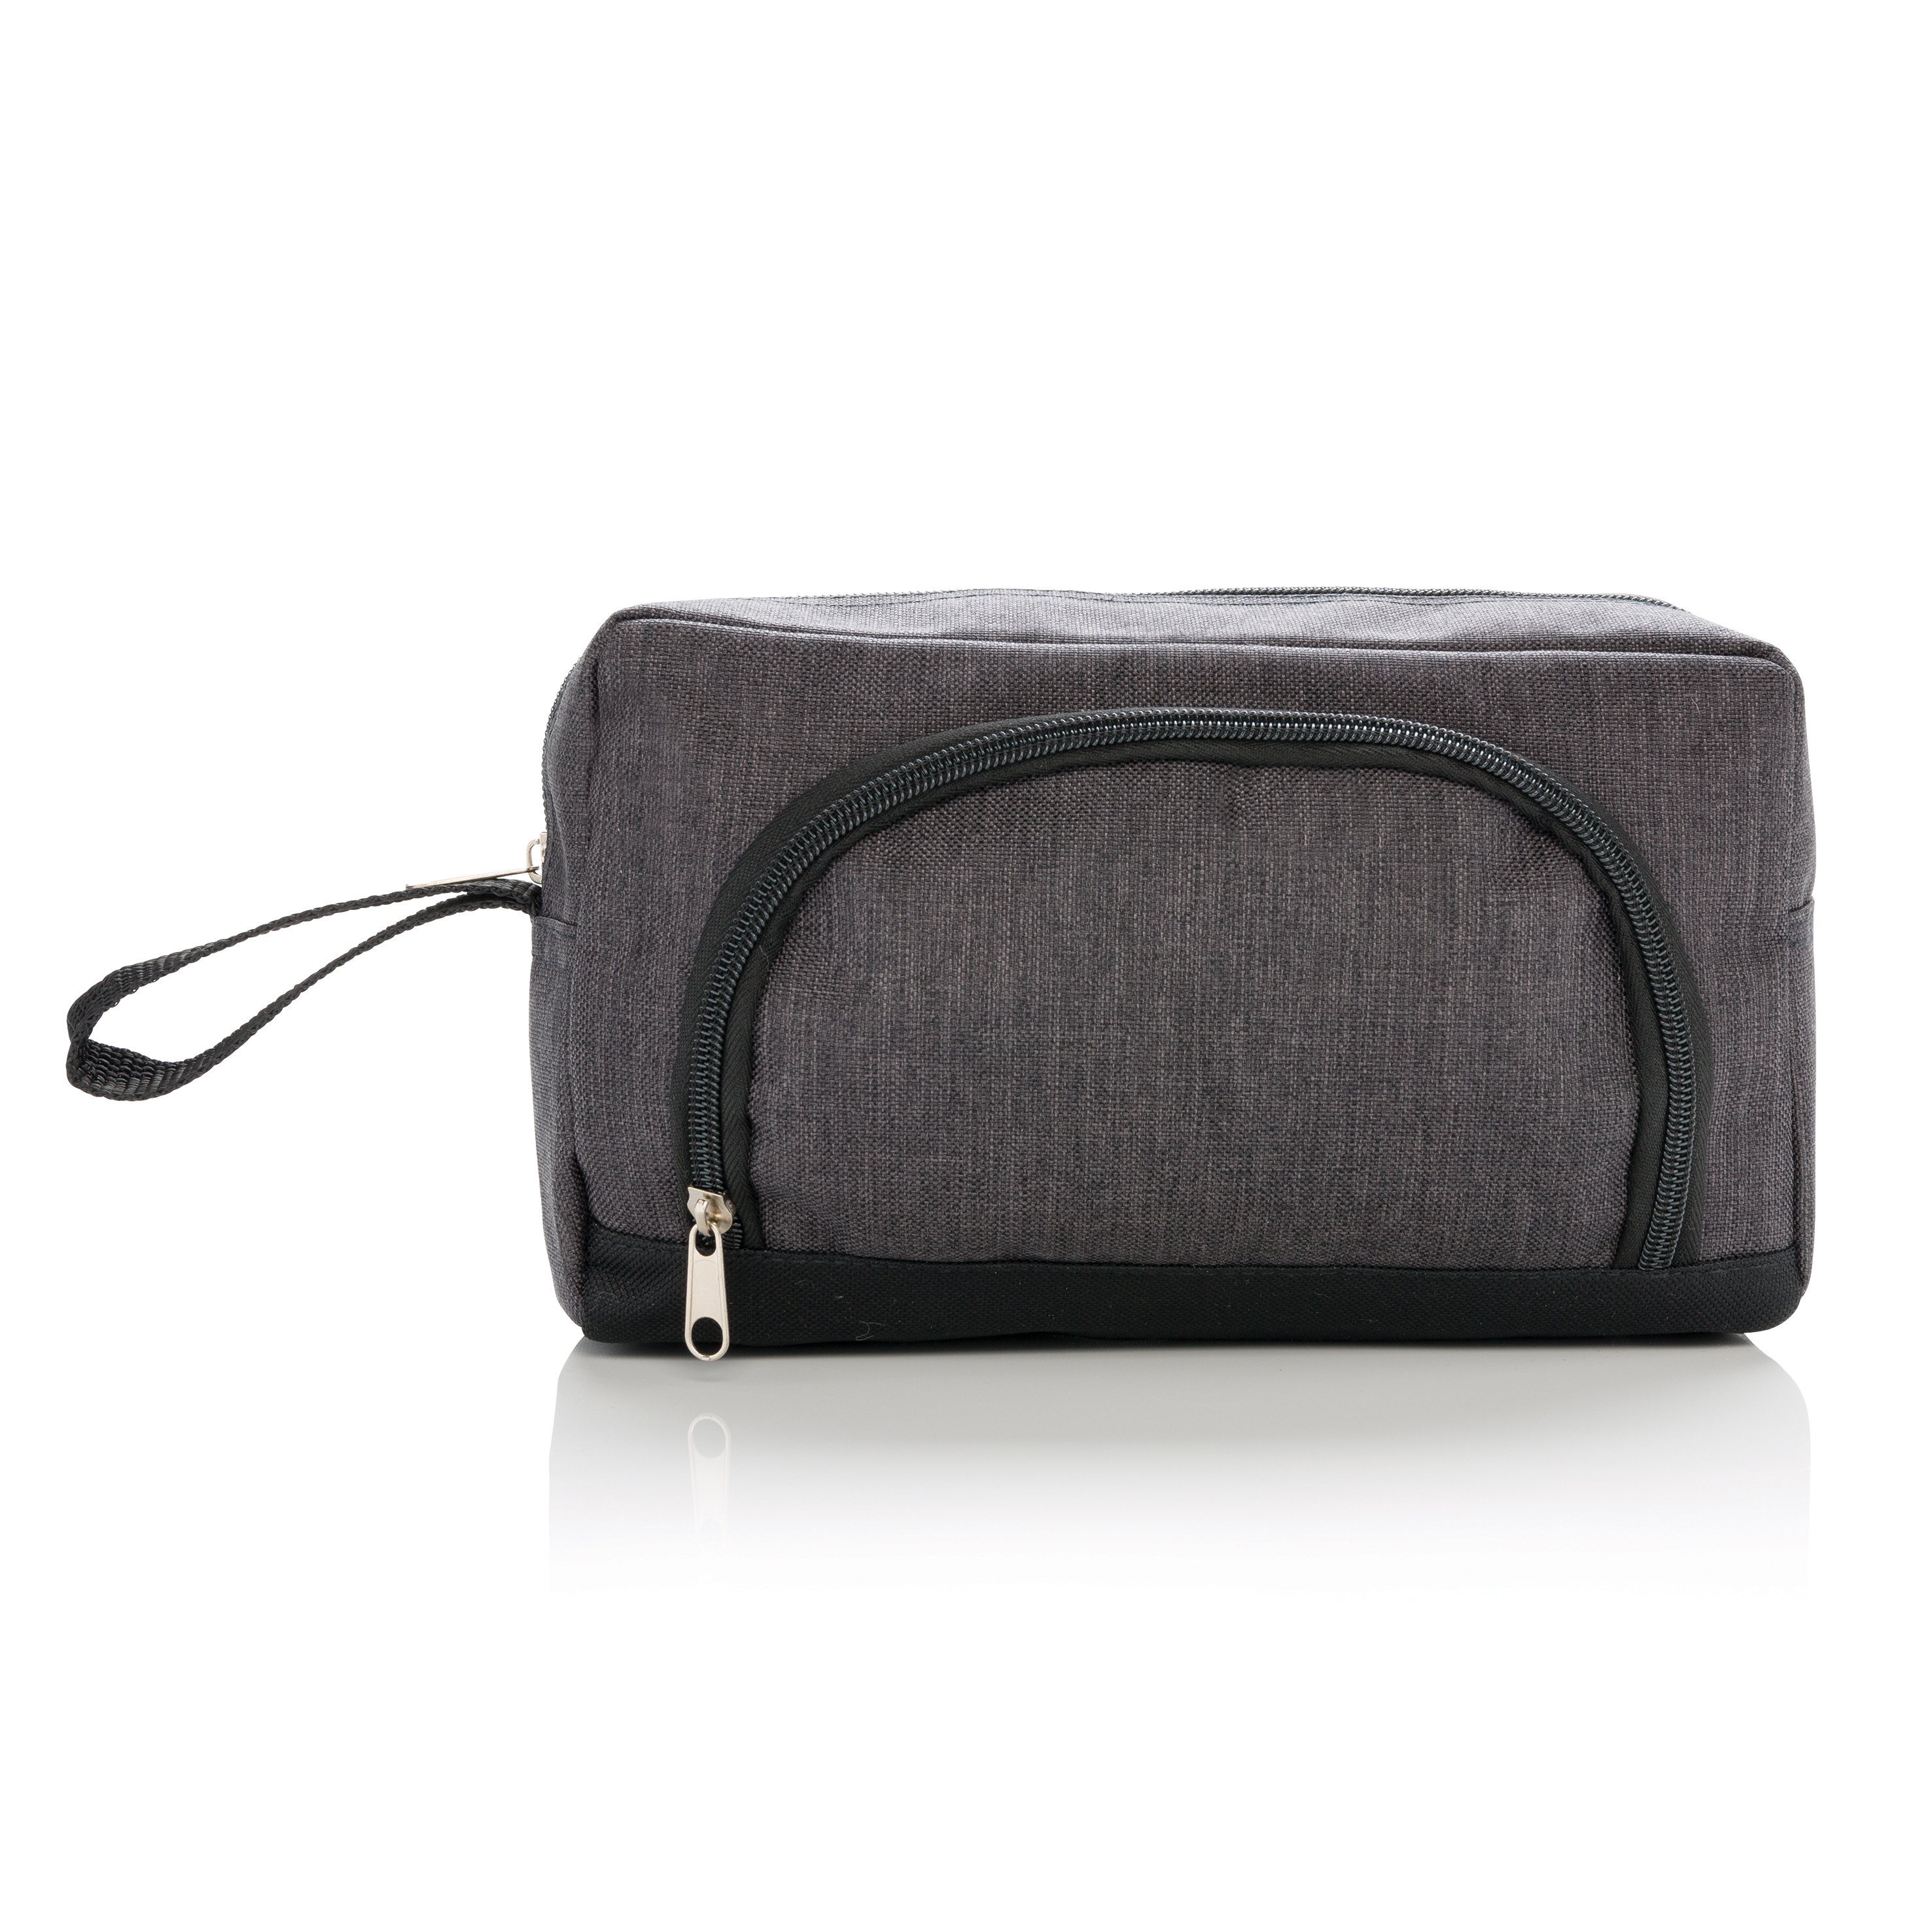 Two Tone Promotional Toiletry Bag  e210d538c9dc3